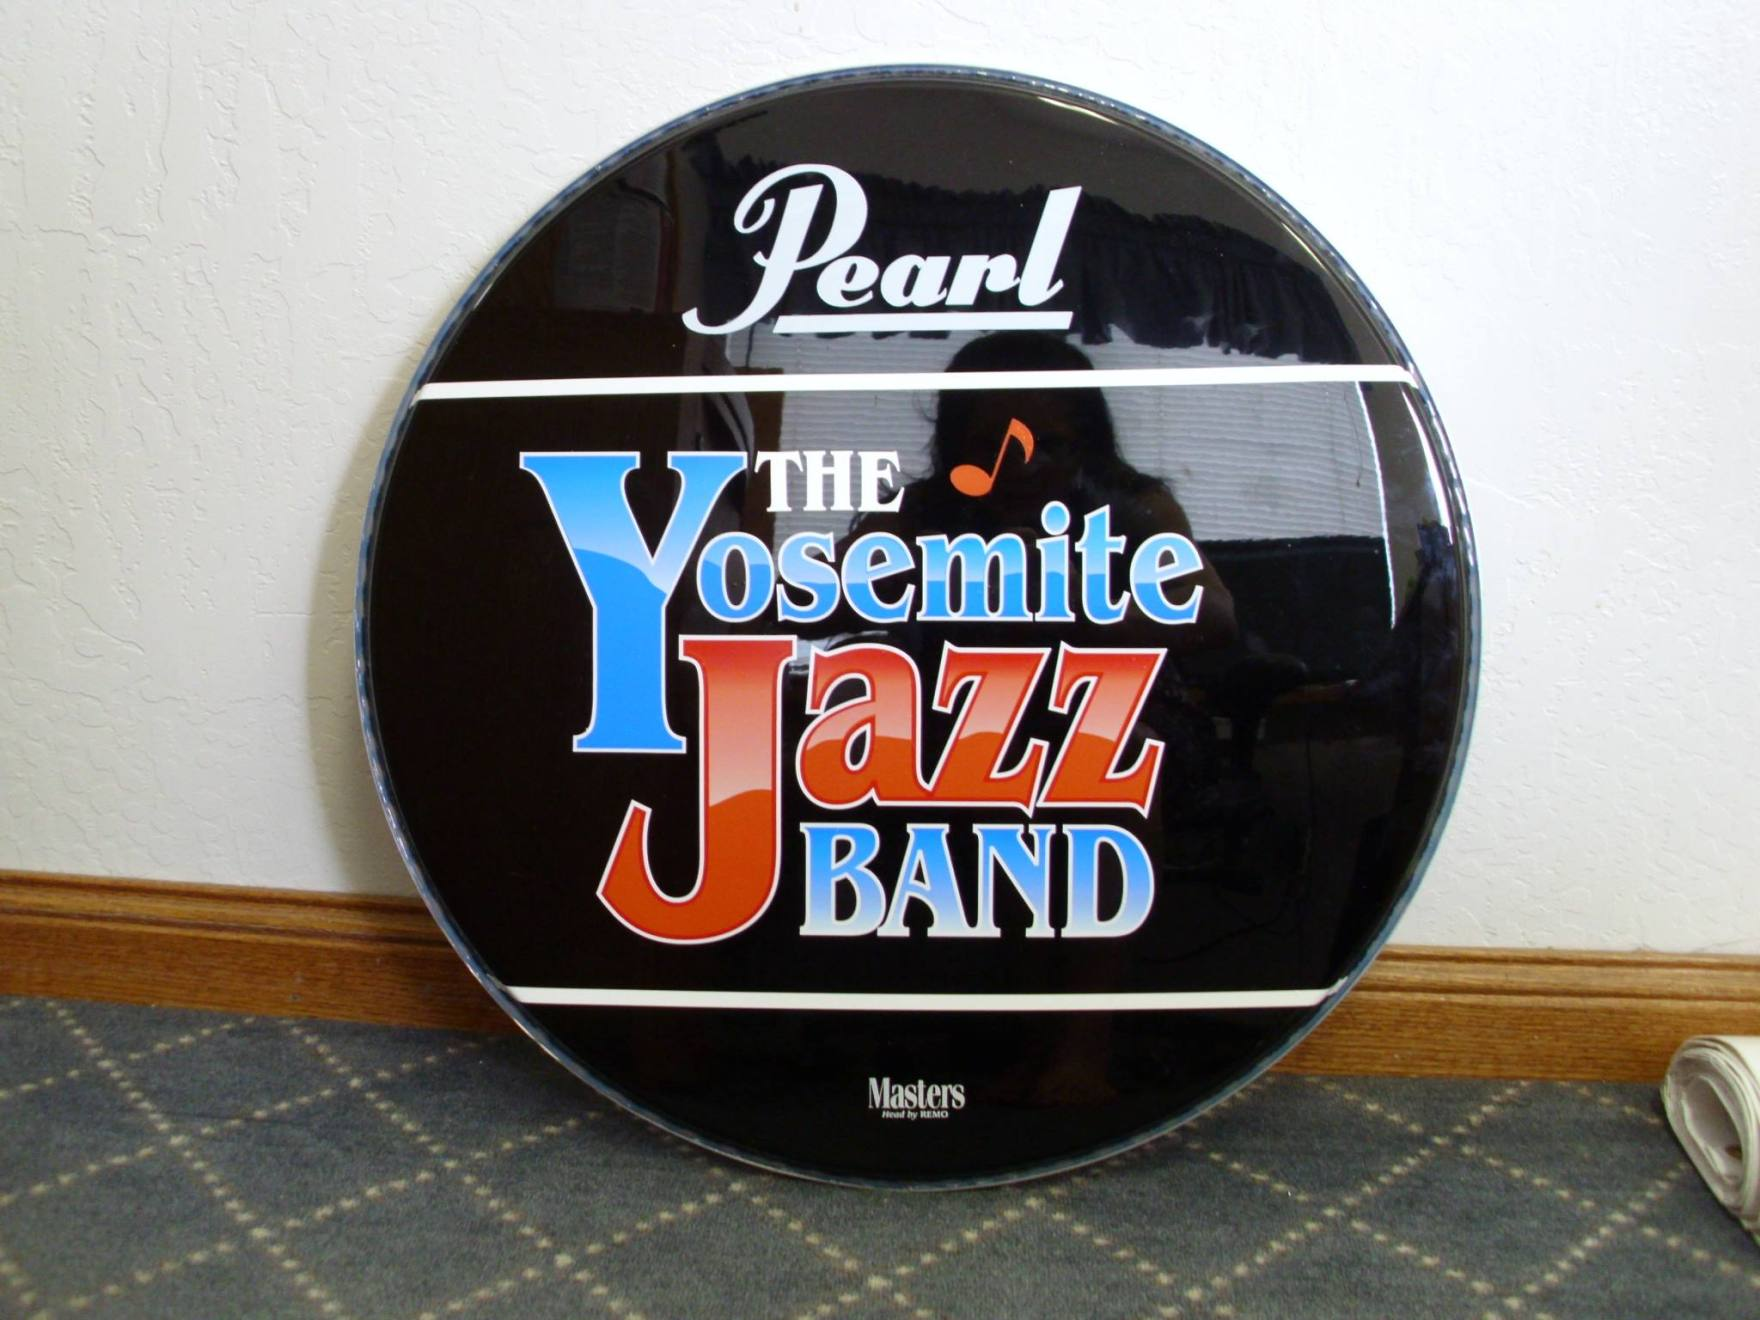 The Yosemite Jazz Band